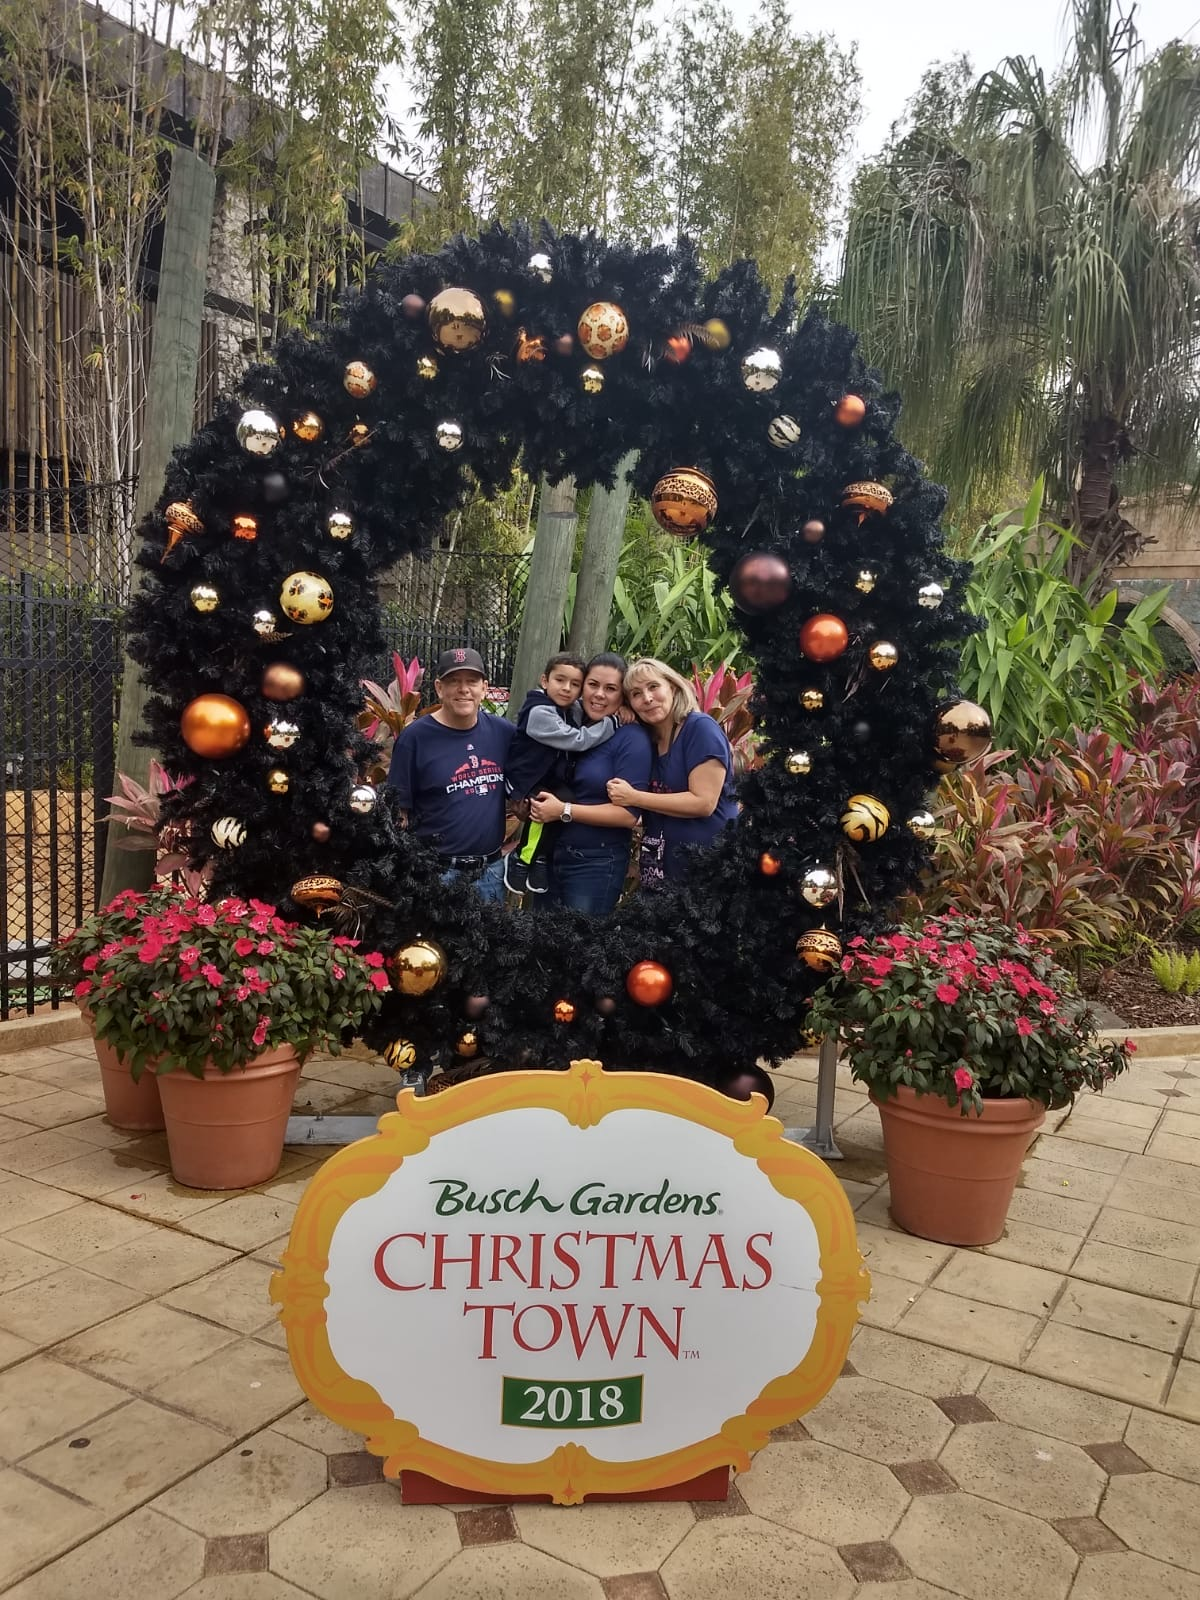 Our Christmas trip! We really had a great time. This is how I remember him, only having great moments!